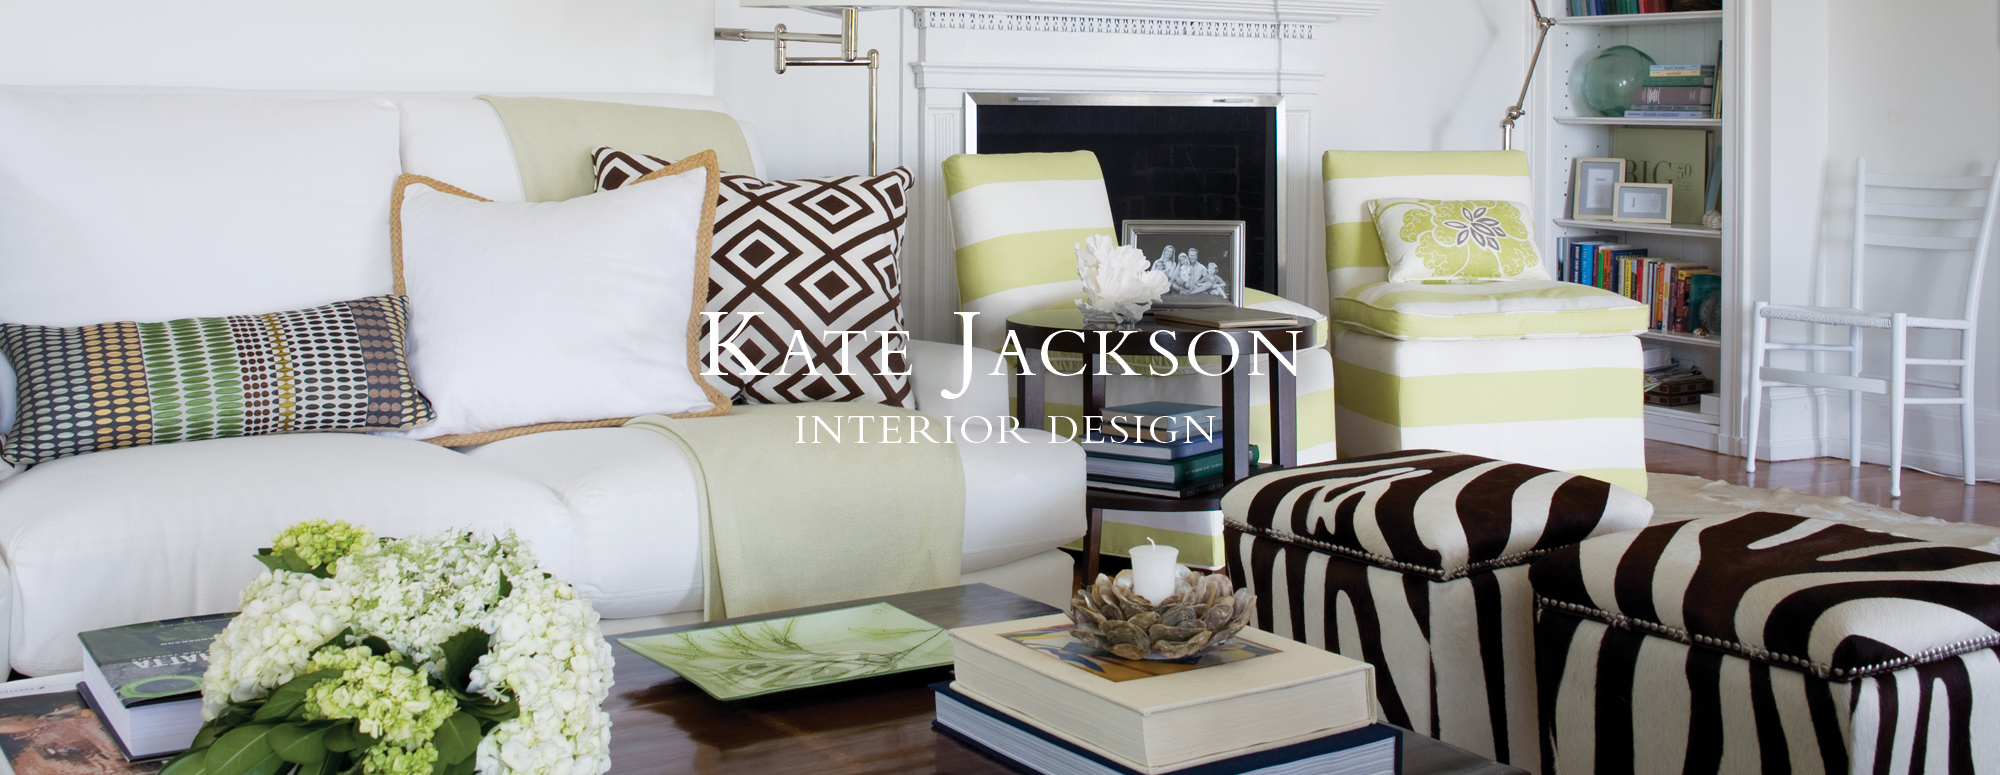 interior designed homes.  Kate Jackson